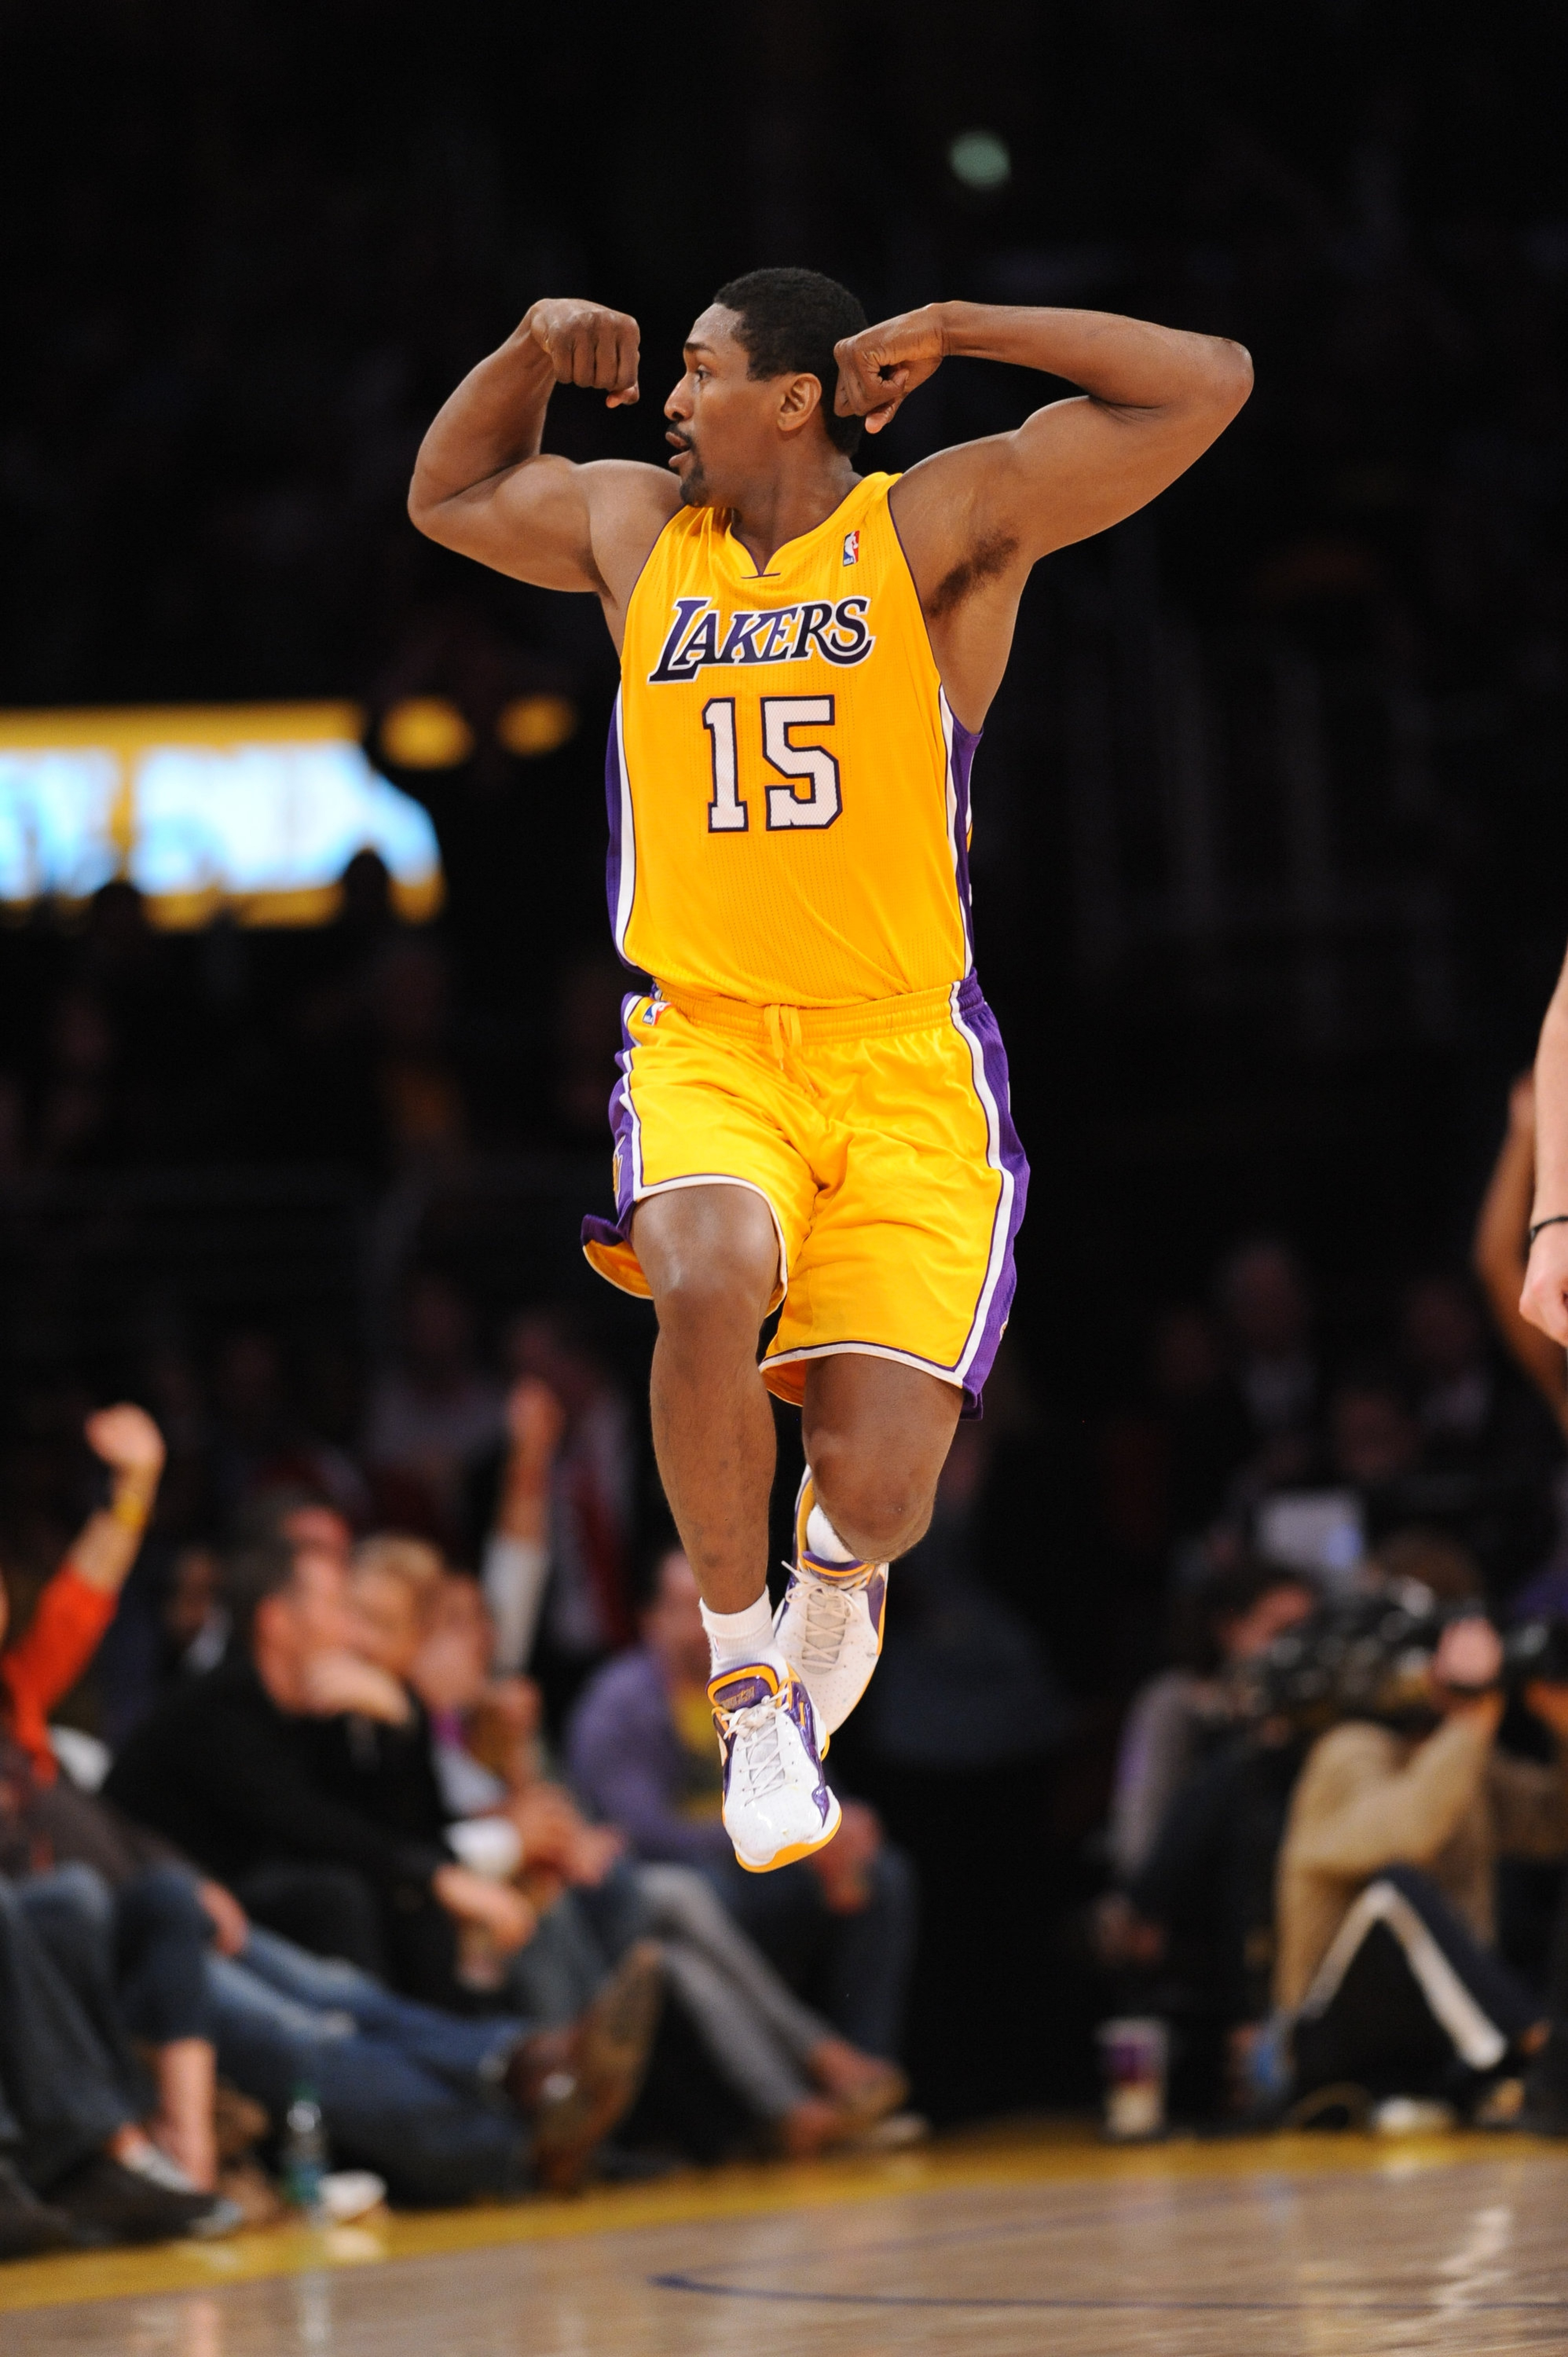 Ron Artest #15 of the Los Angeles Lakers jumps while flexing his muscles after dunking against the Los Angeles Clippers at Staples Center on March 25, 2011 in Los Angeles, California. (Getty Images)